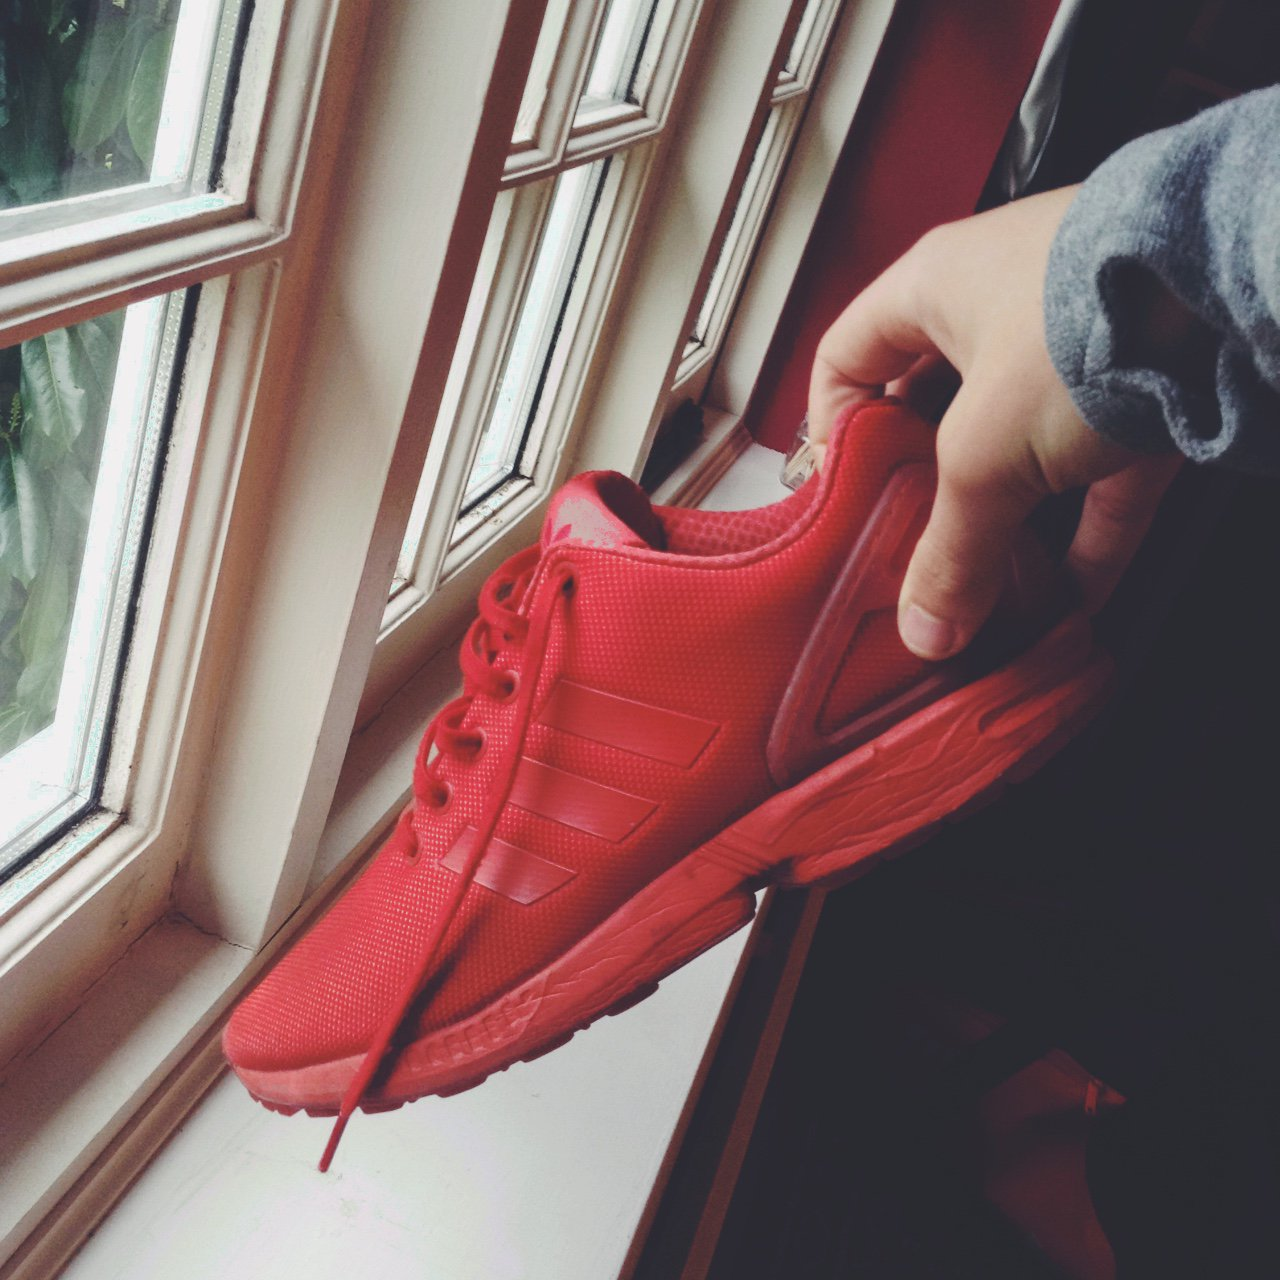 3c1f3bc884d Adidas ZX flux red . Size 9 UK men s . Highly wanted pair